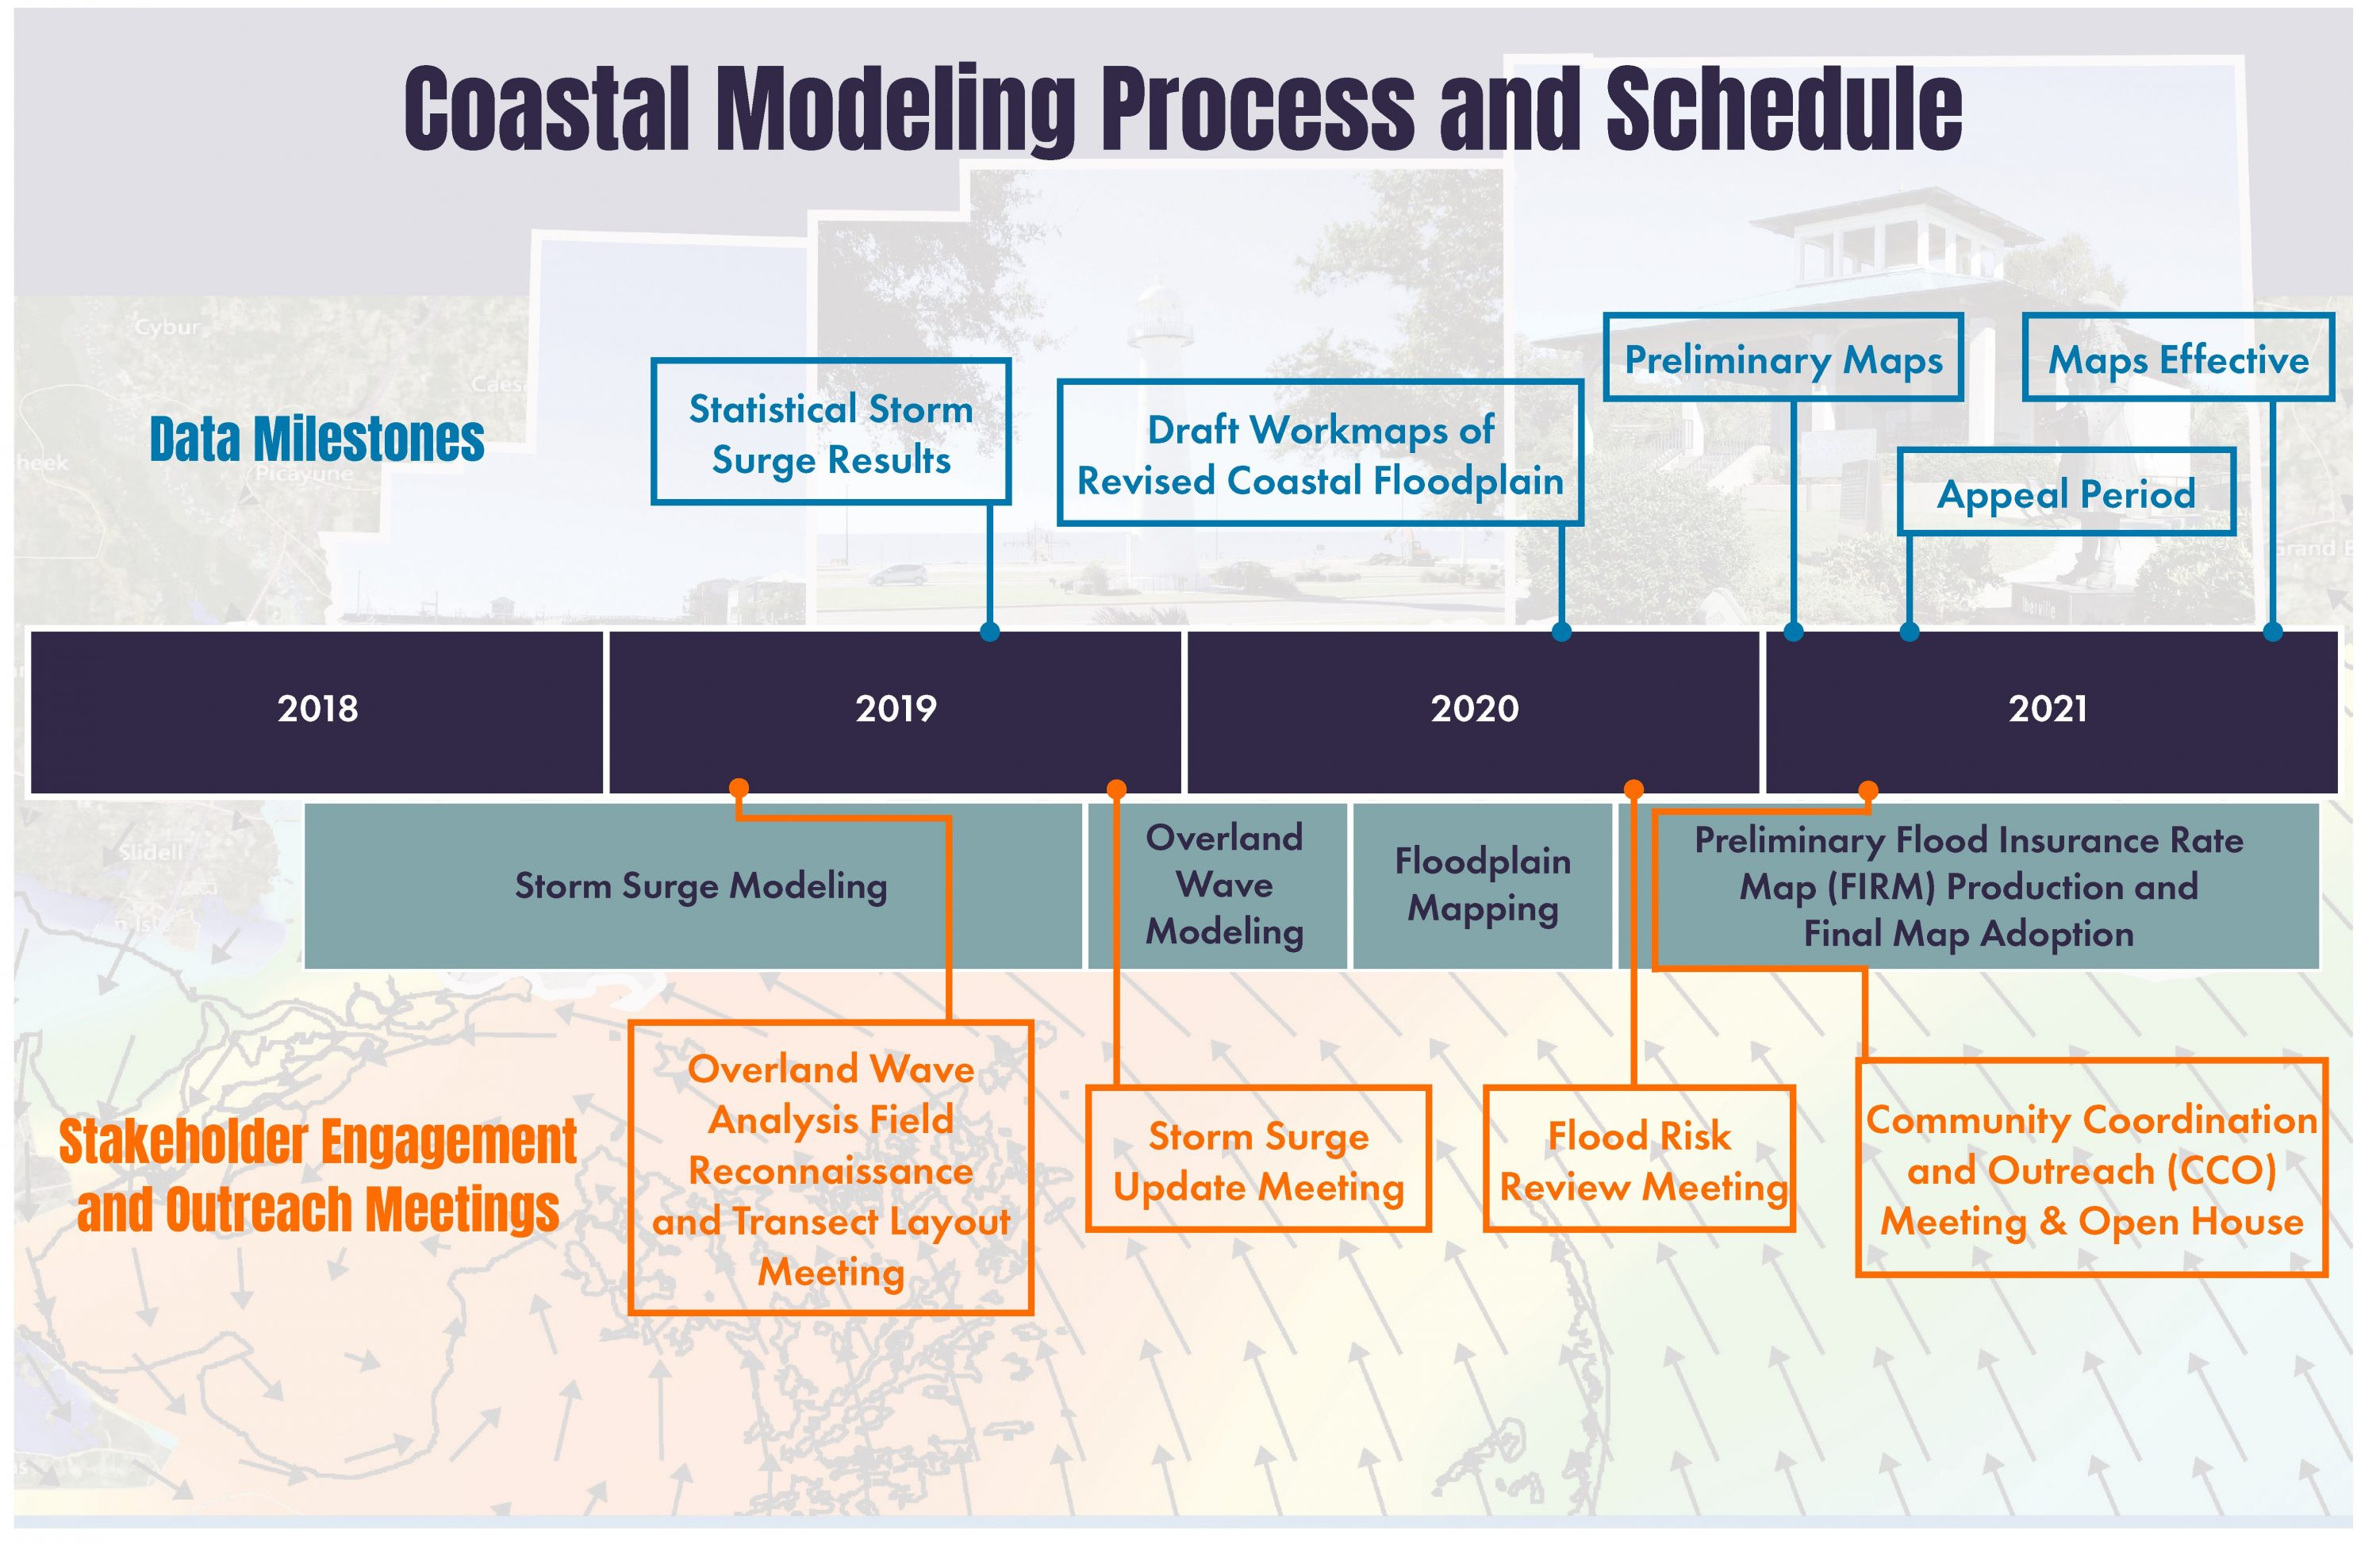 Project Schedule (2018 – 2021)